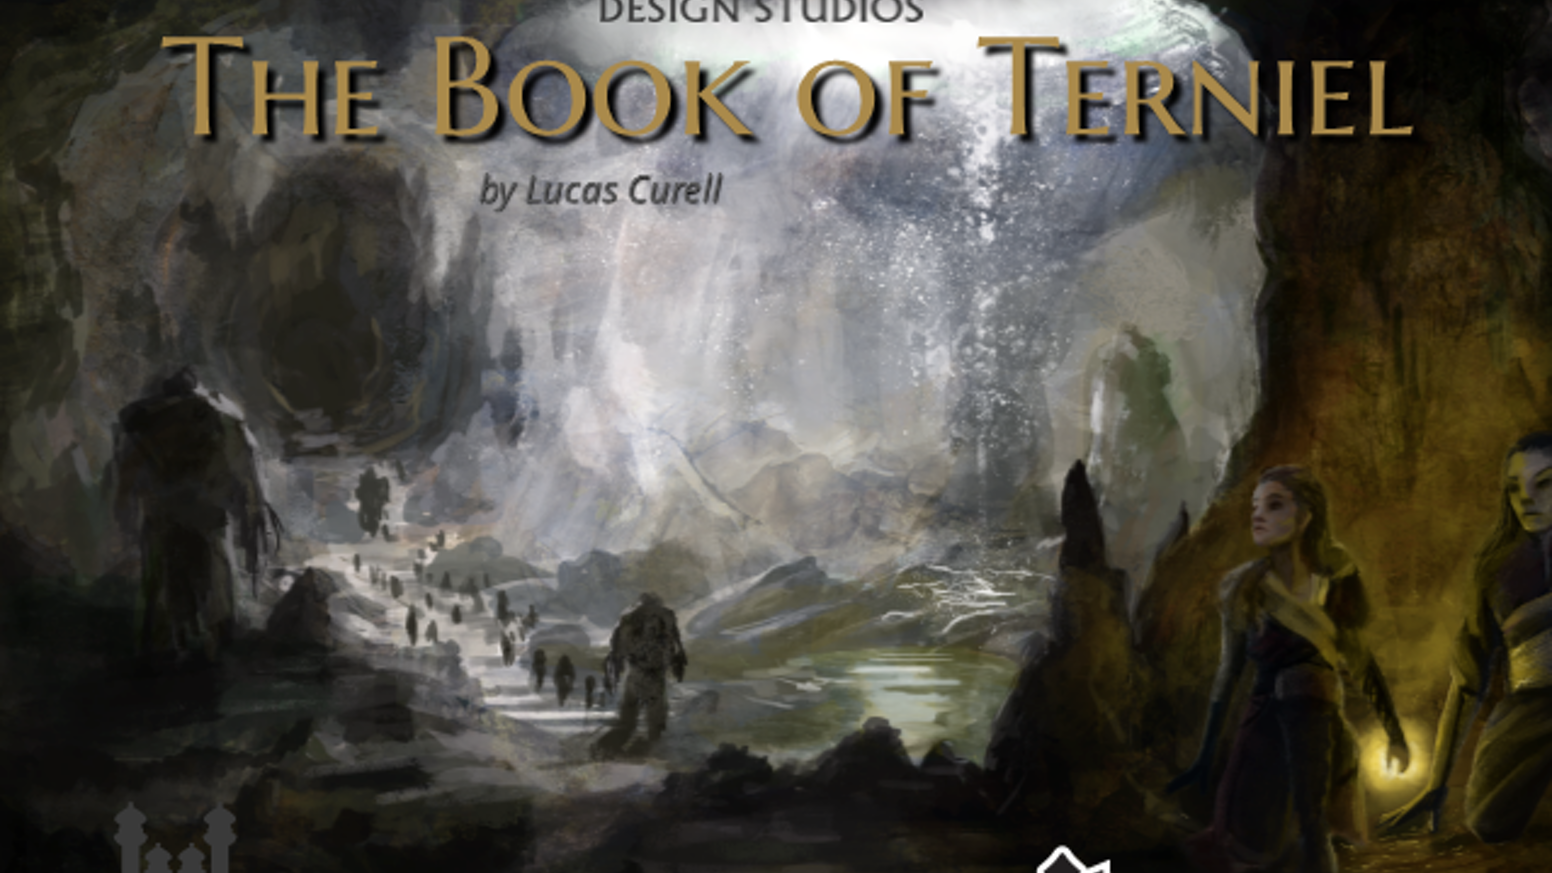 The book of terniel a pathfinder roleplaying game adventure by the you stand between four factions seeking the book of terniel choose a side or claim solutioingenieria Choice Image